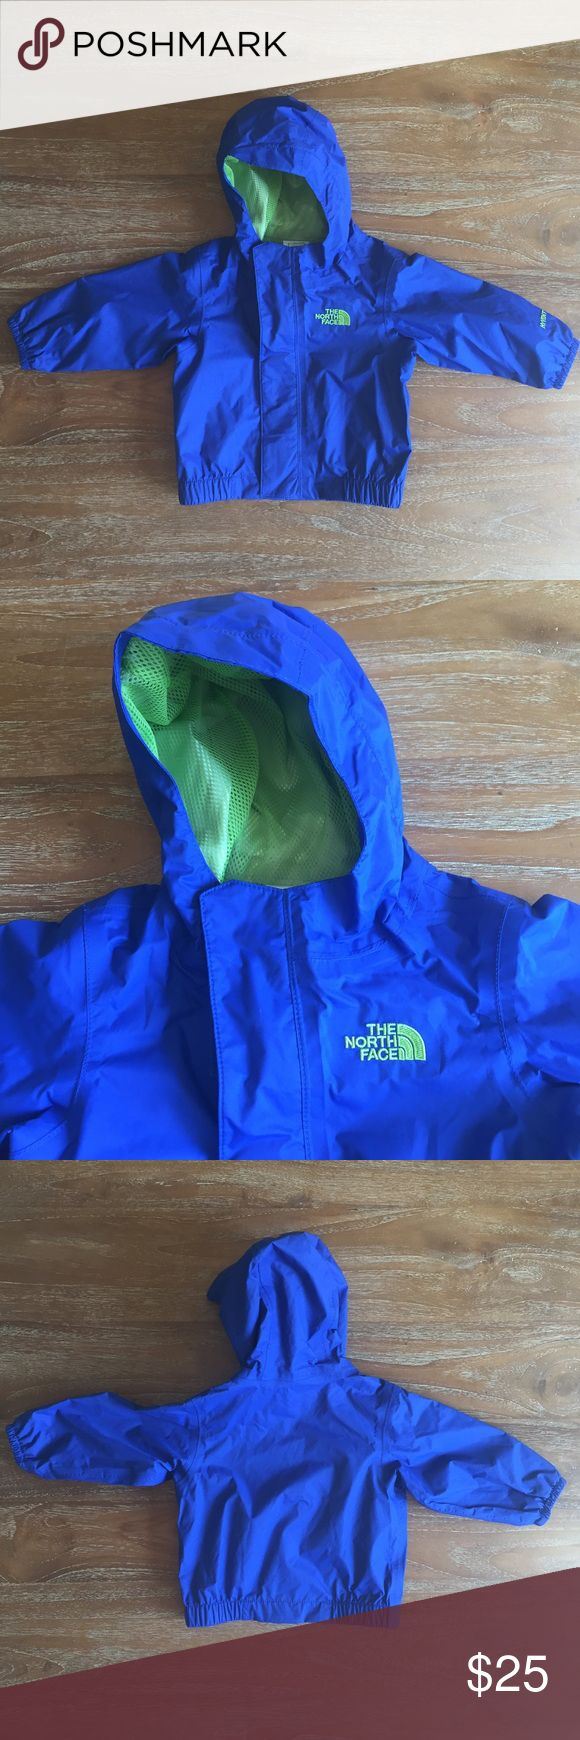 NWOT The North Face Jacket Size 3-6 Months Adorable new without tags The North Face jacket size 3-6 months old. My kid grew out of it before wearing it. No signs of wear, it has just been sitting in the closet for 3 years. The color is a bright blue with lime green piping. No trades or PayPal please.❤️ North Face Jackets & Coats